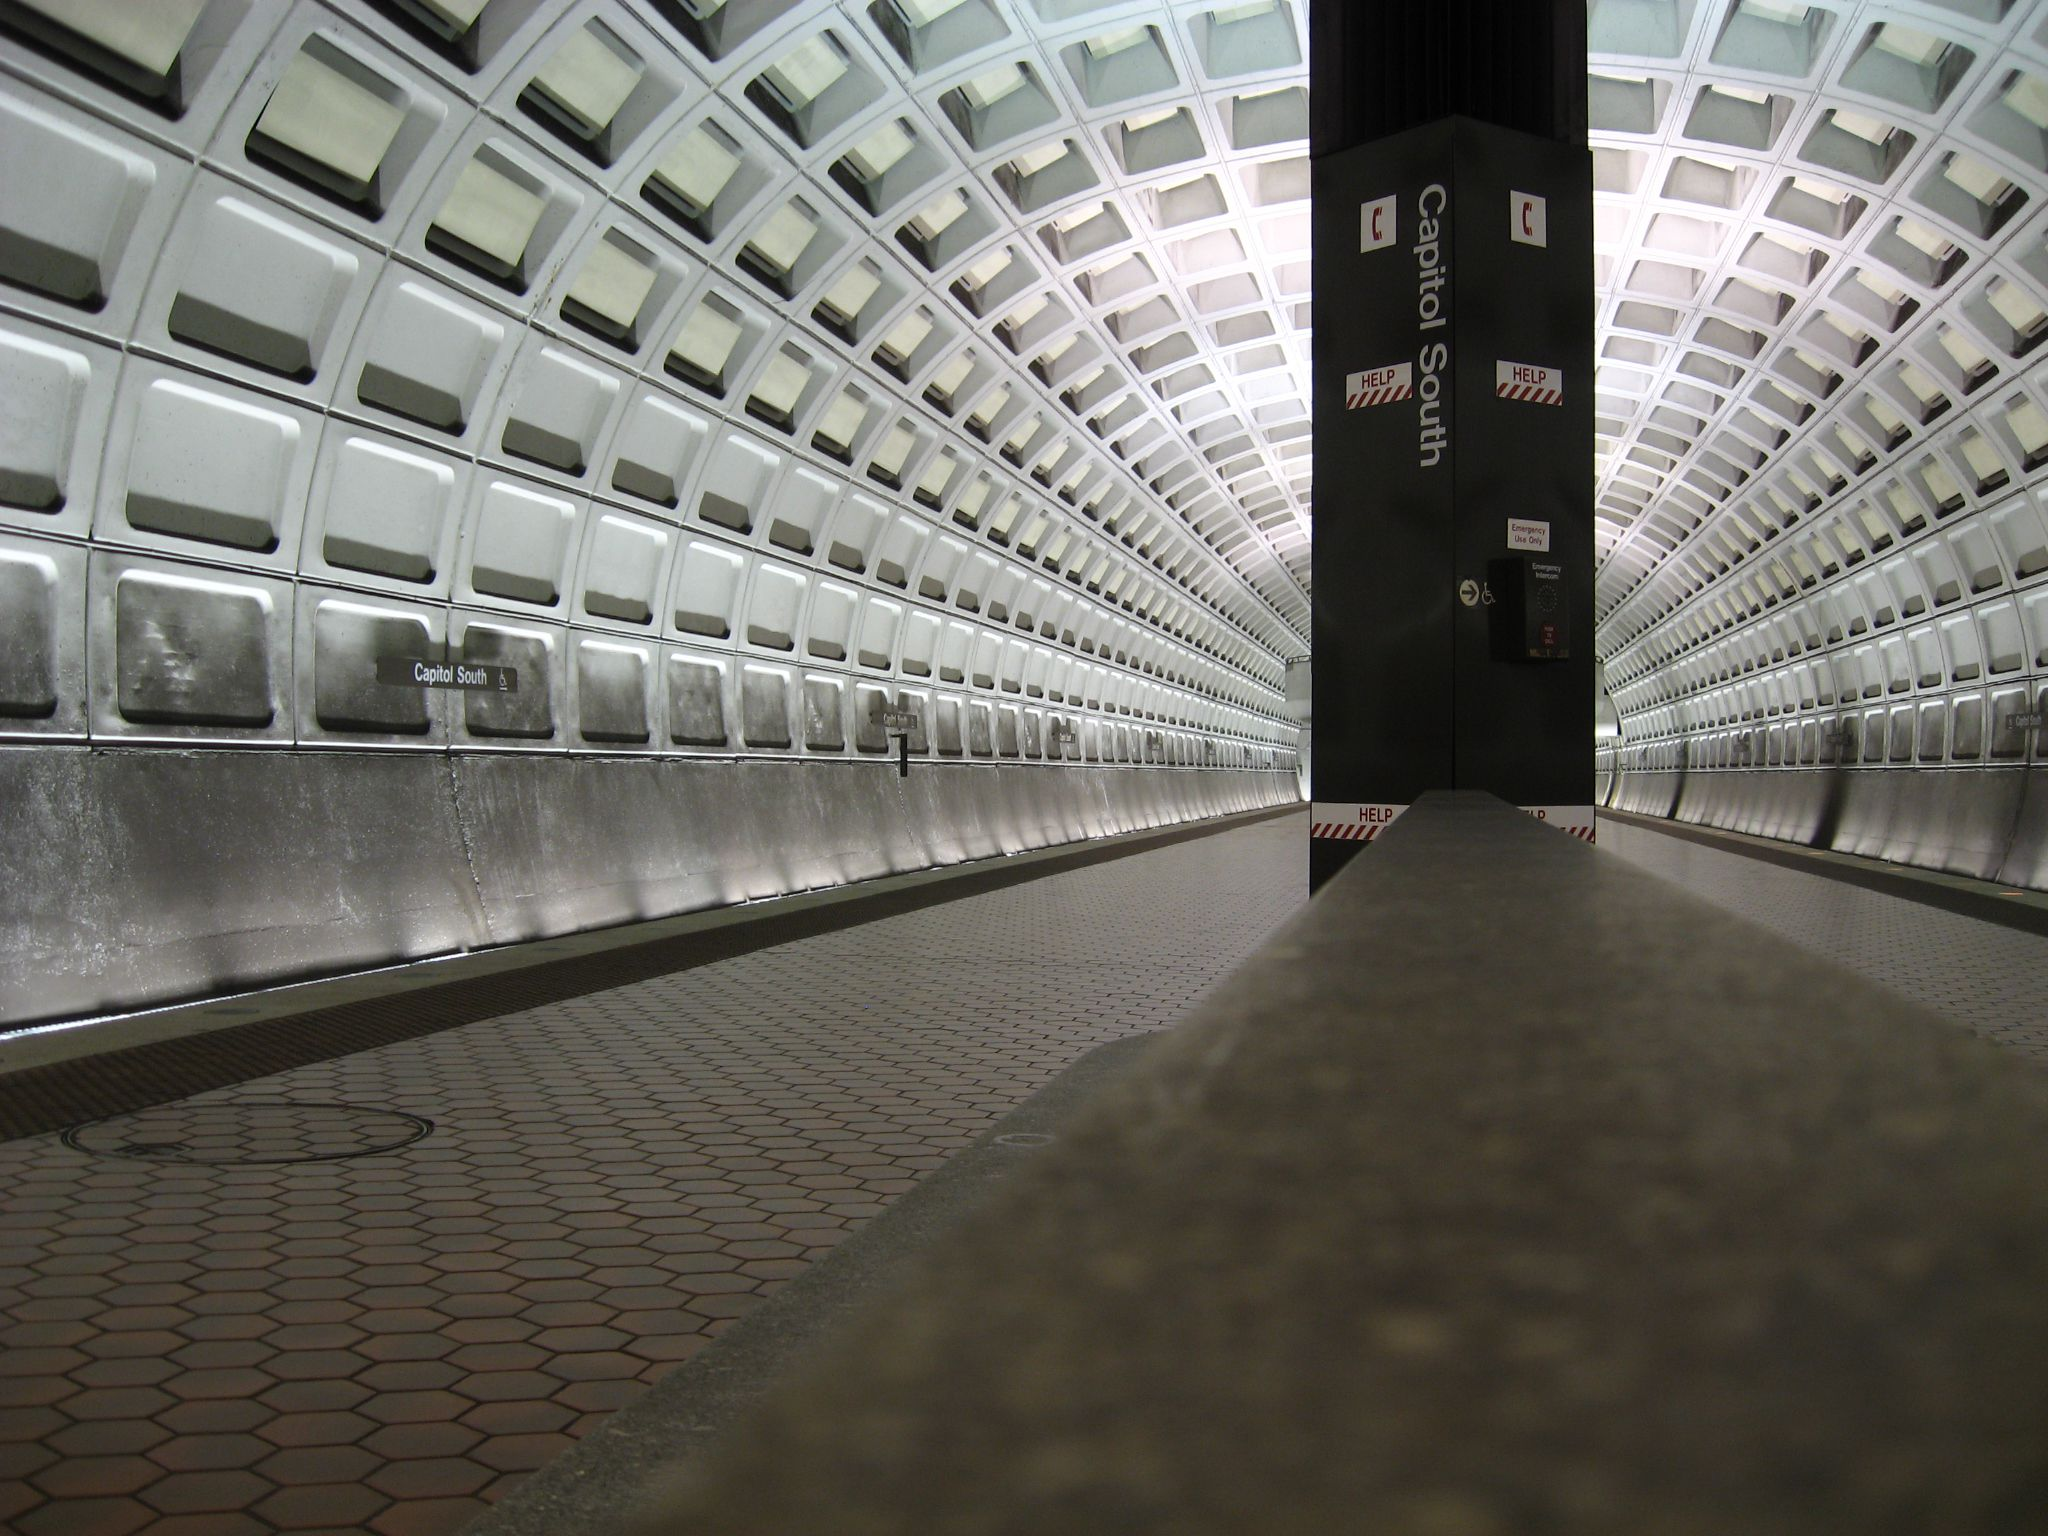 Slide 32 of 52: The Washington, D.C., subway station is less than five minutes from Pennsylvania Ave. and the U.S. Supreme Court. If you're lucky, you may hear a local singer taking advantage of the echoing acoustics.